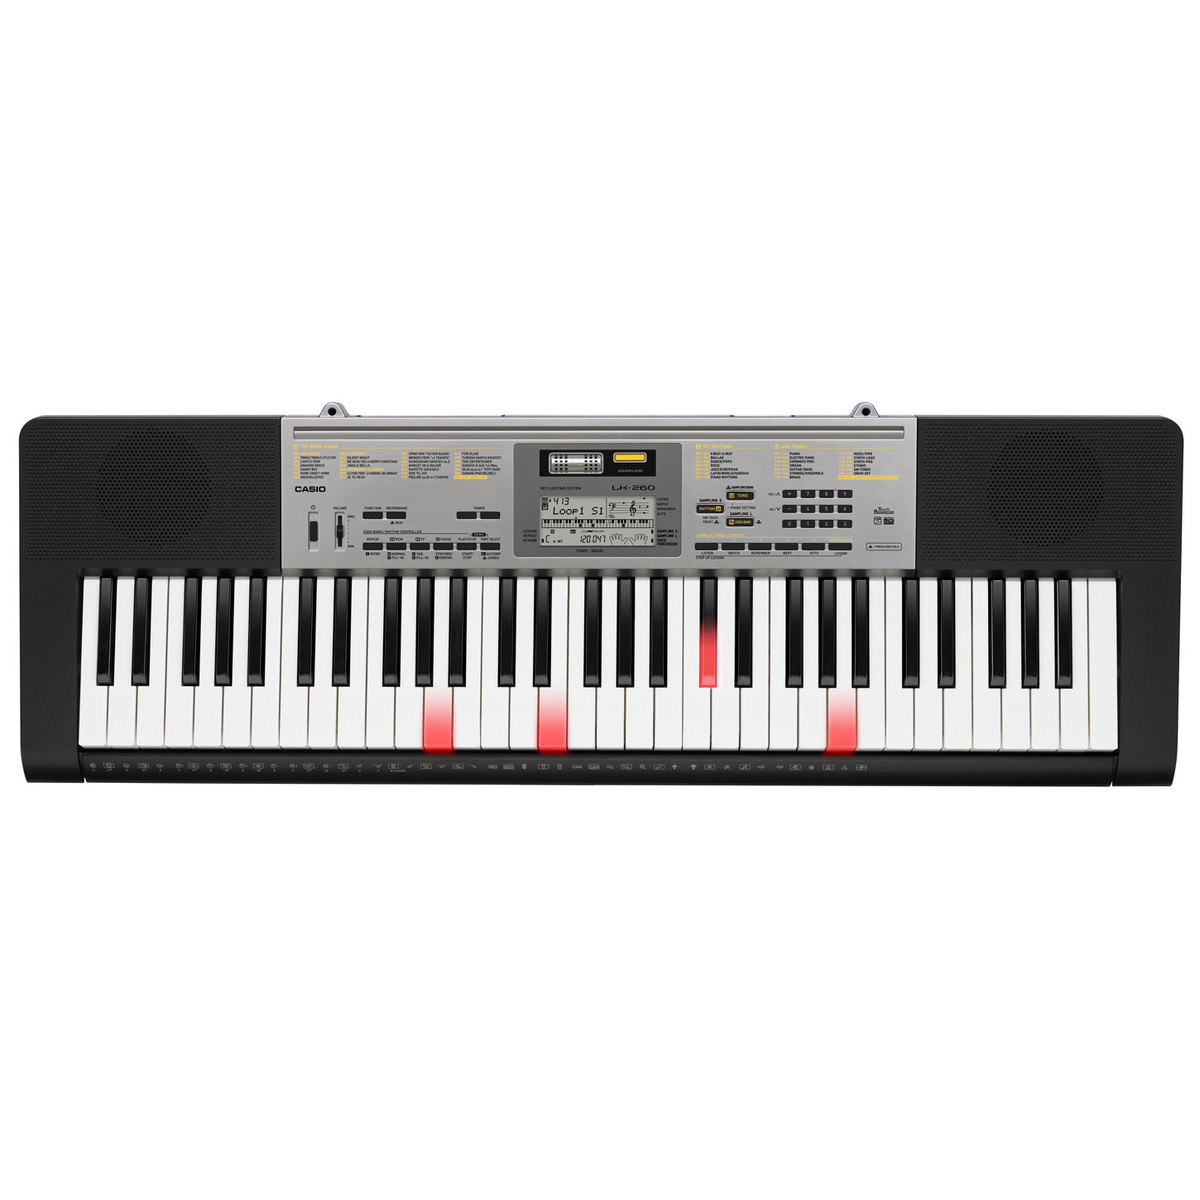 Touch Key Beleuchtung Casio Lk 260 61 Touch Sensitive Key Lighting Keyboard